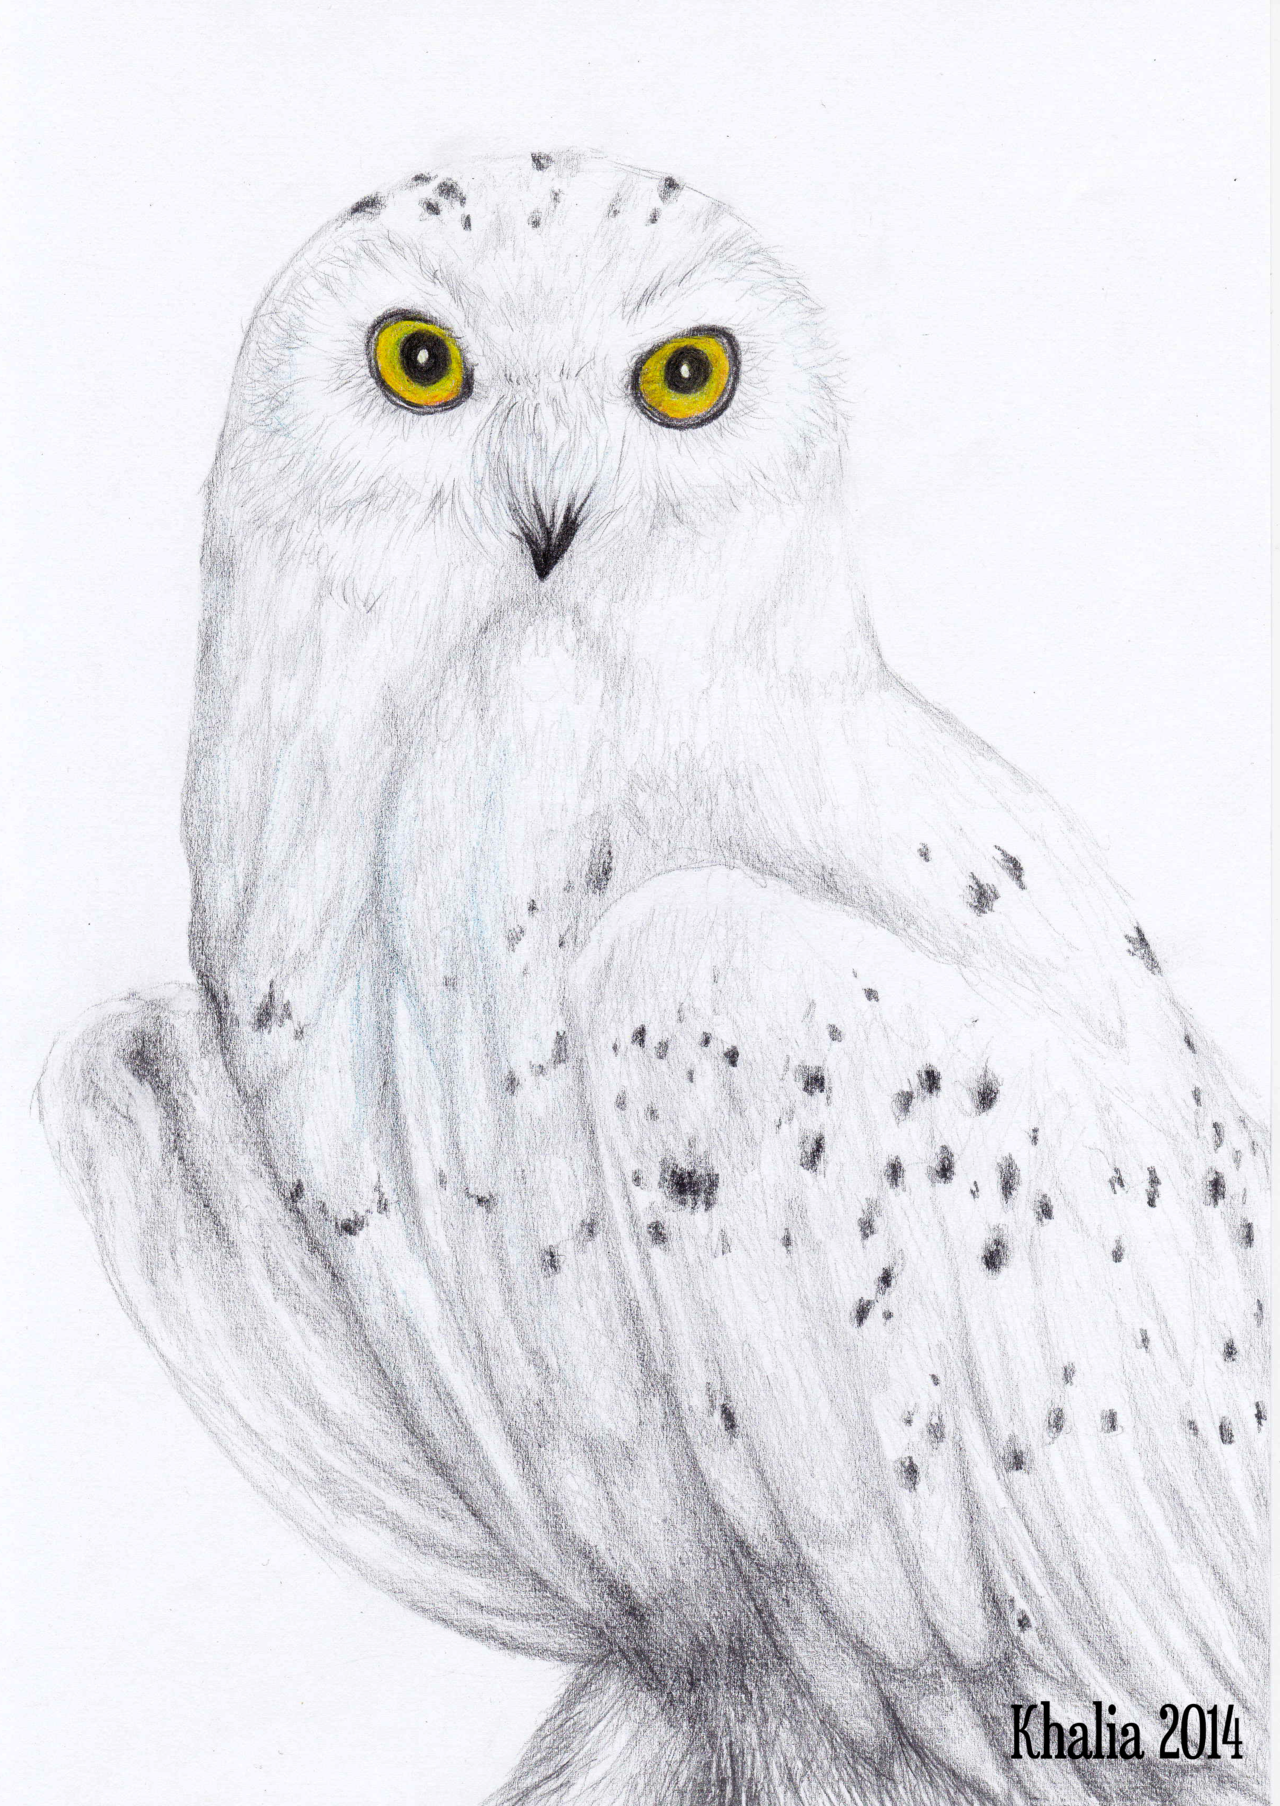 clip download Drawing owl snowy. By khaliaart deviantart com